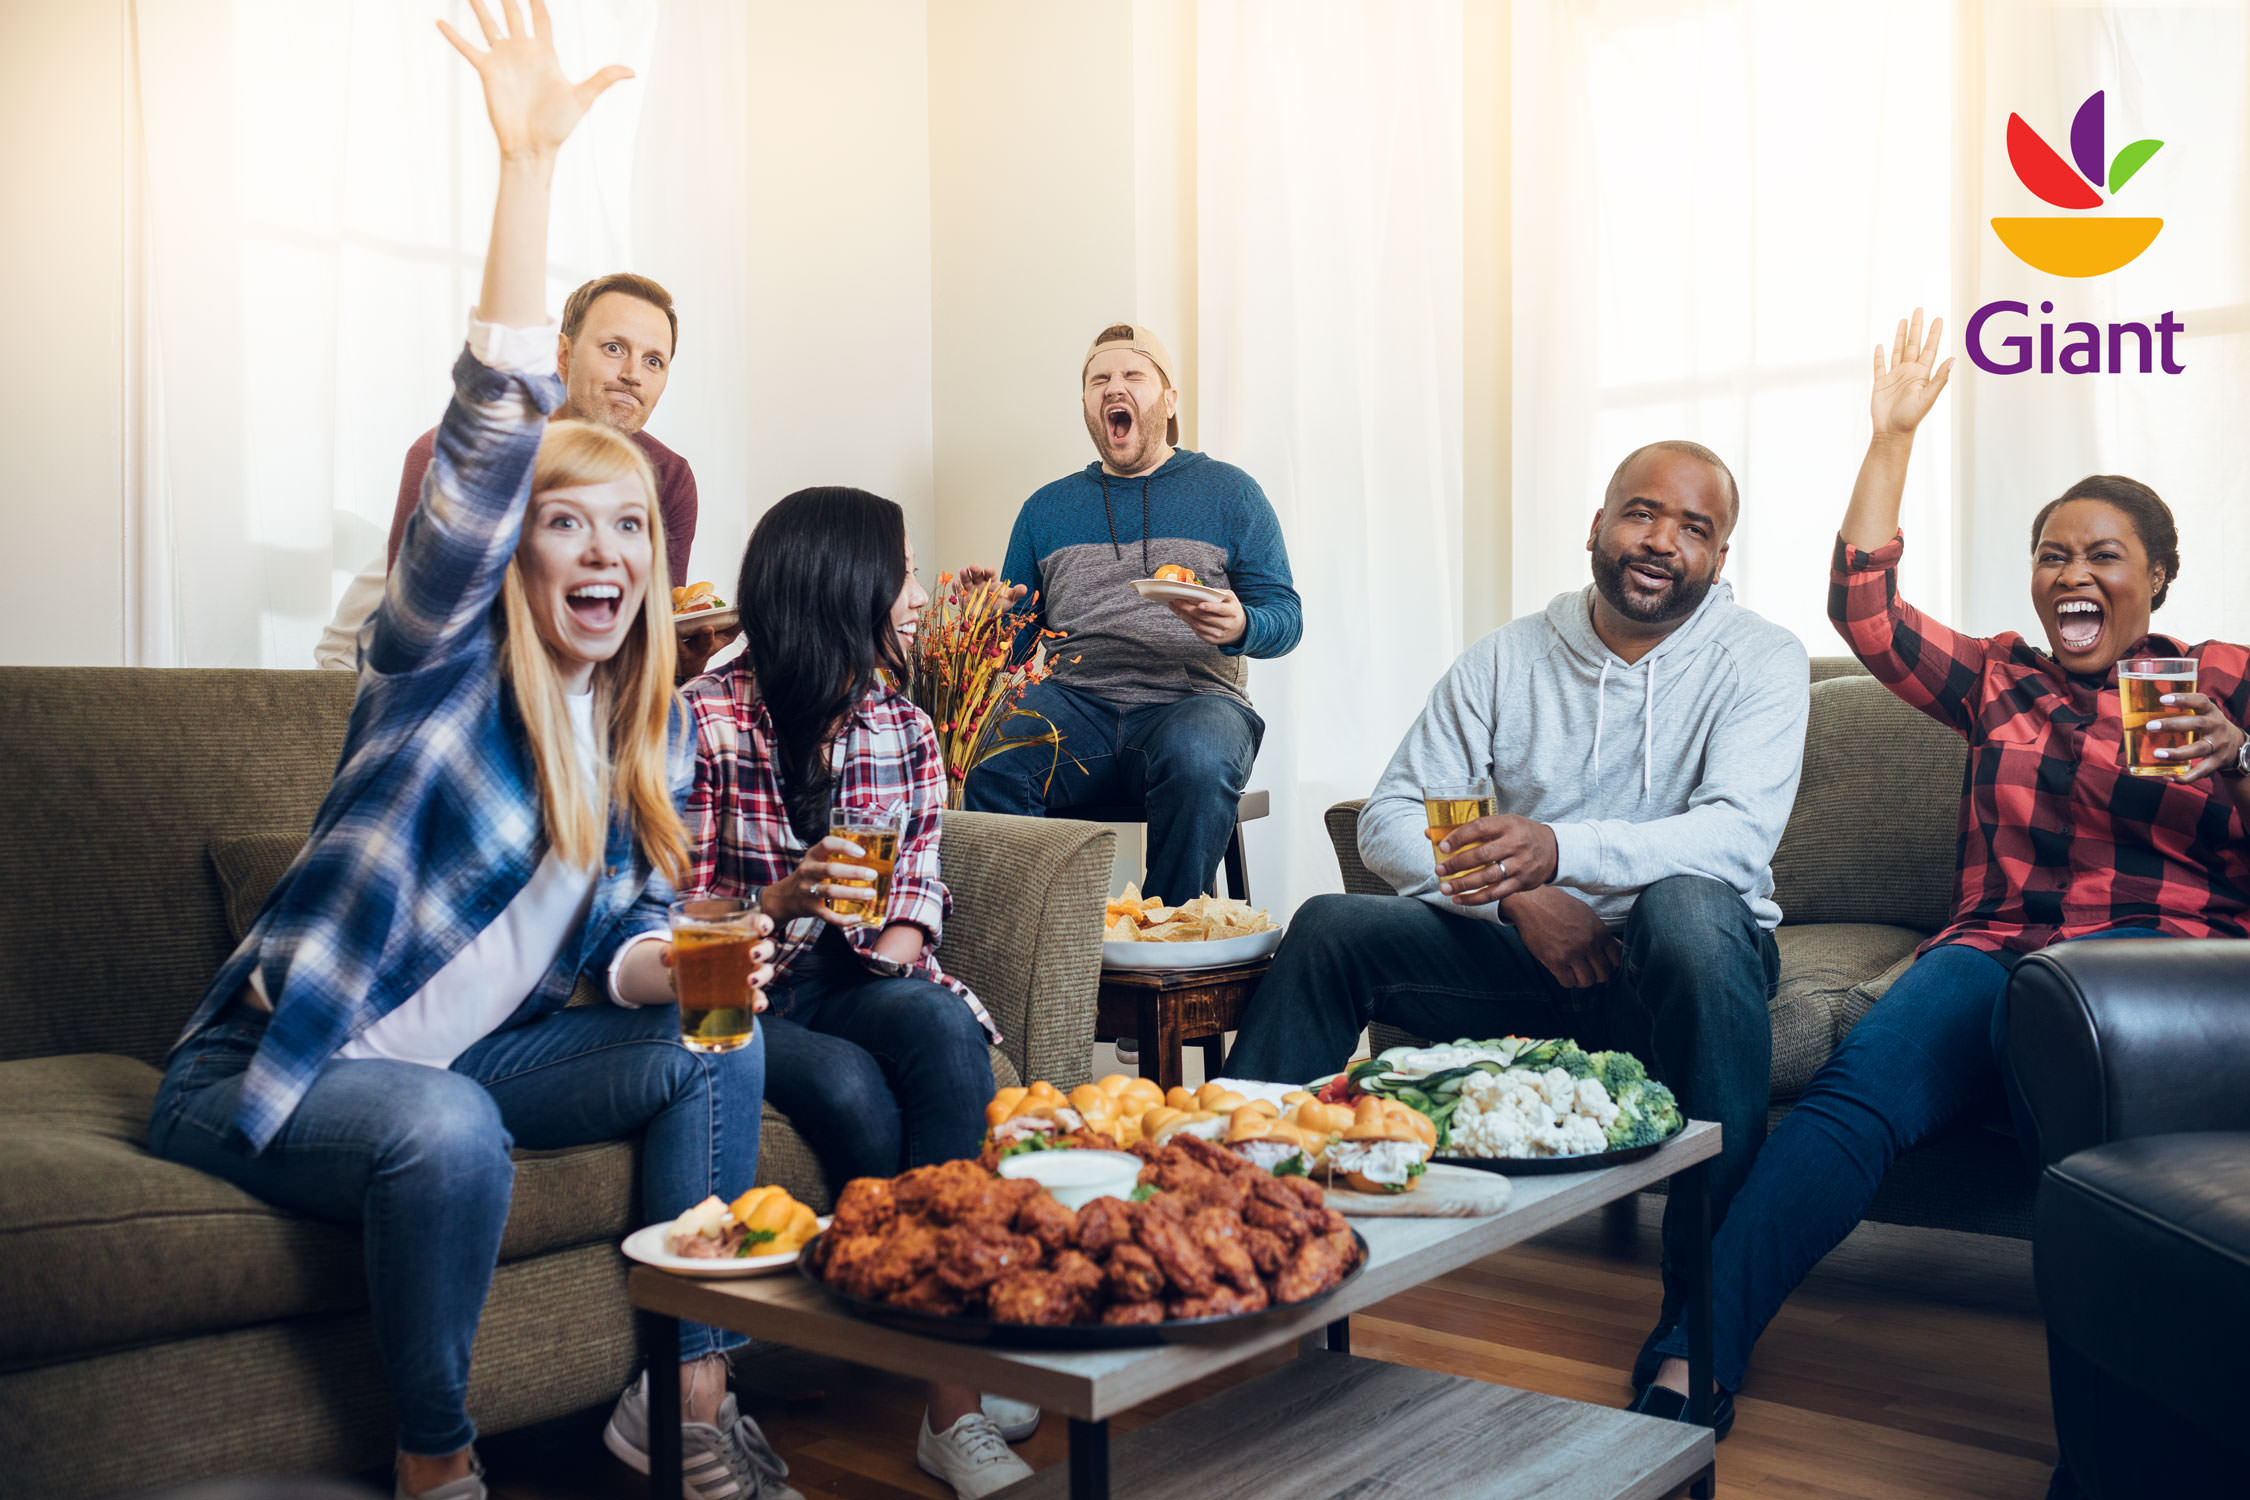 fans cheering while watching football game in living room, washington dc commercial photography